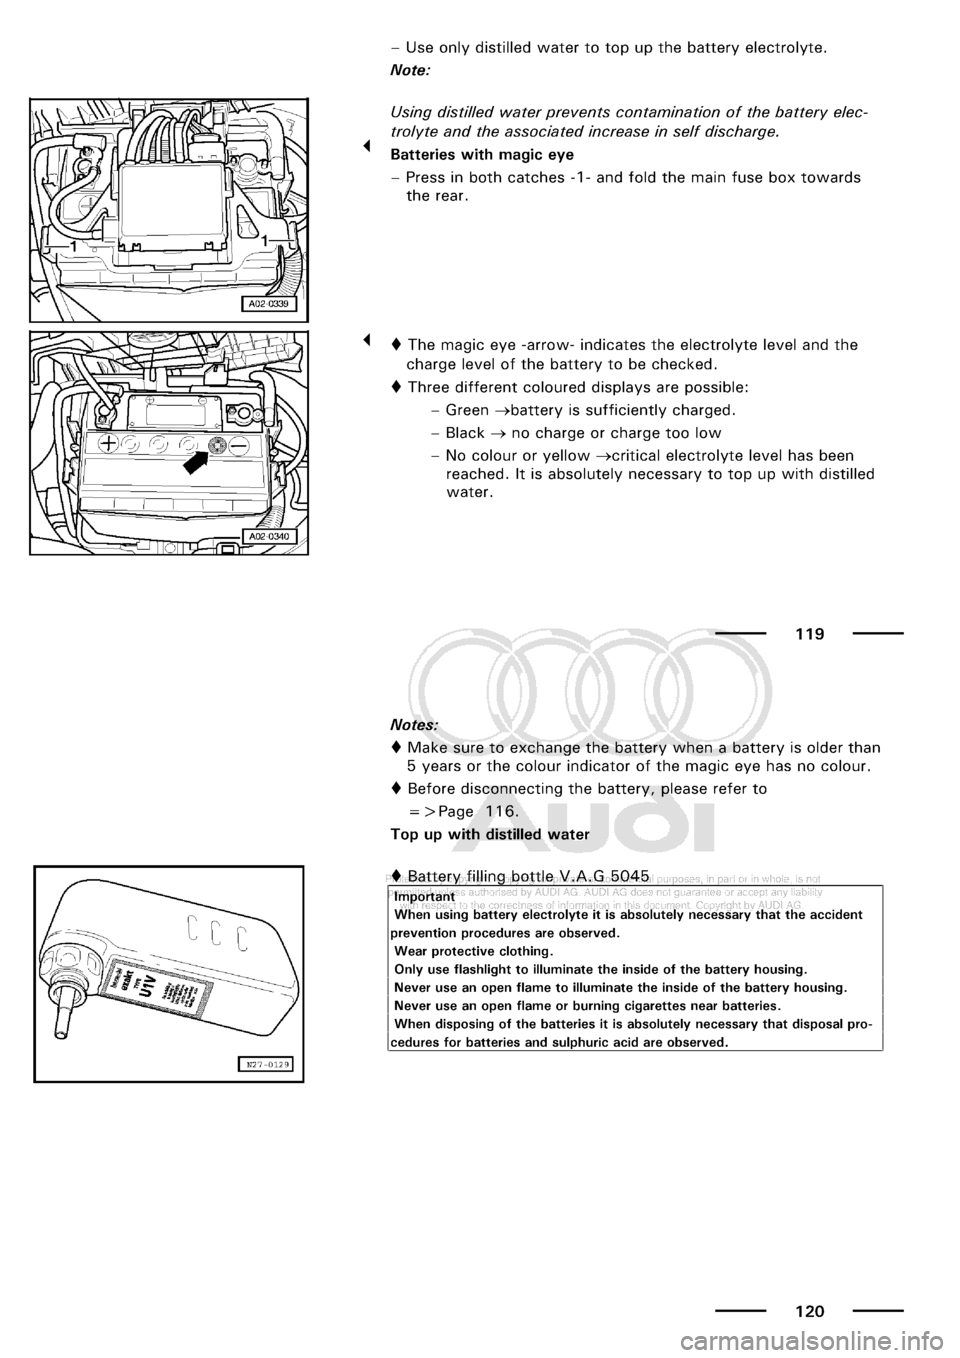 service manual car service manuals pdf 2009 mazda mazda5. Black Bedroom Furniture Sets. Home Design Ideas